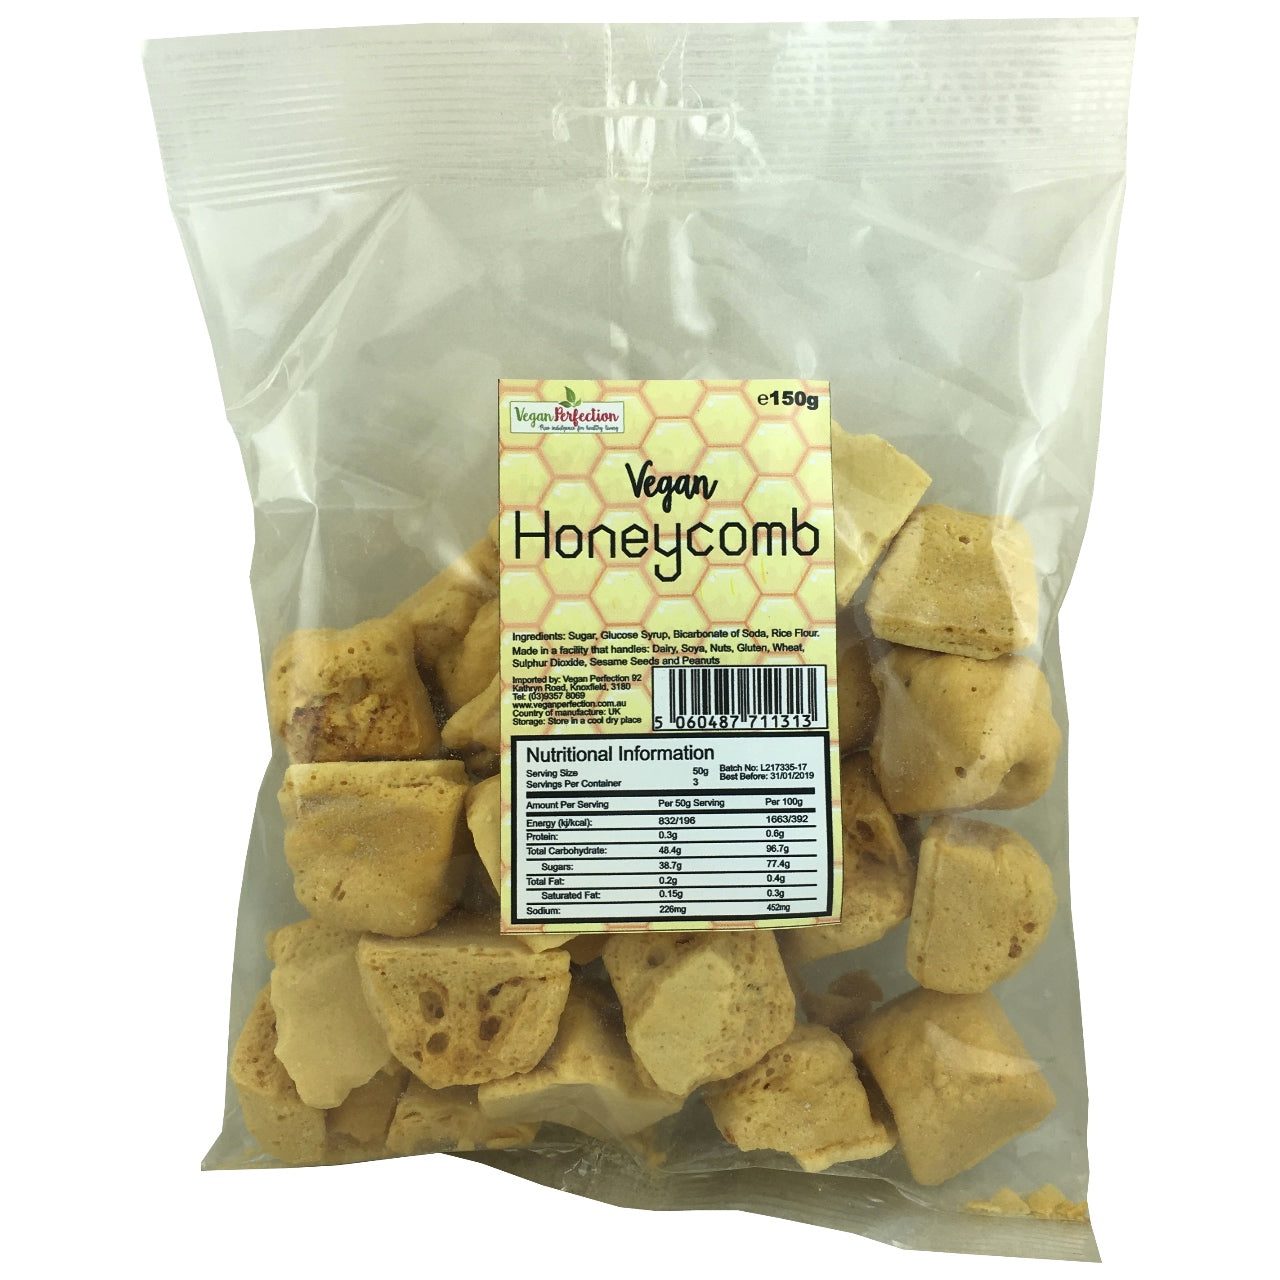 Vegan Honeycomb